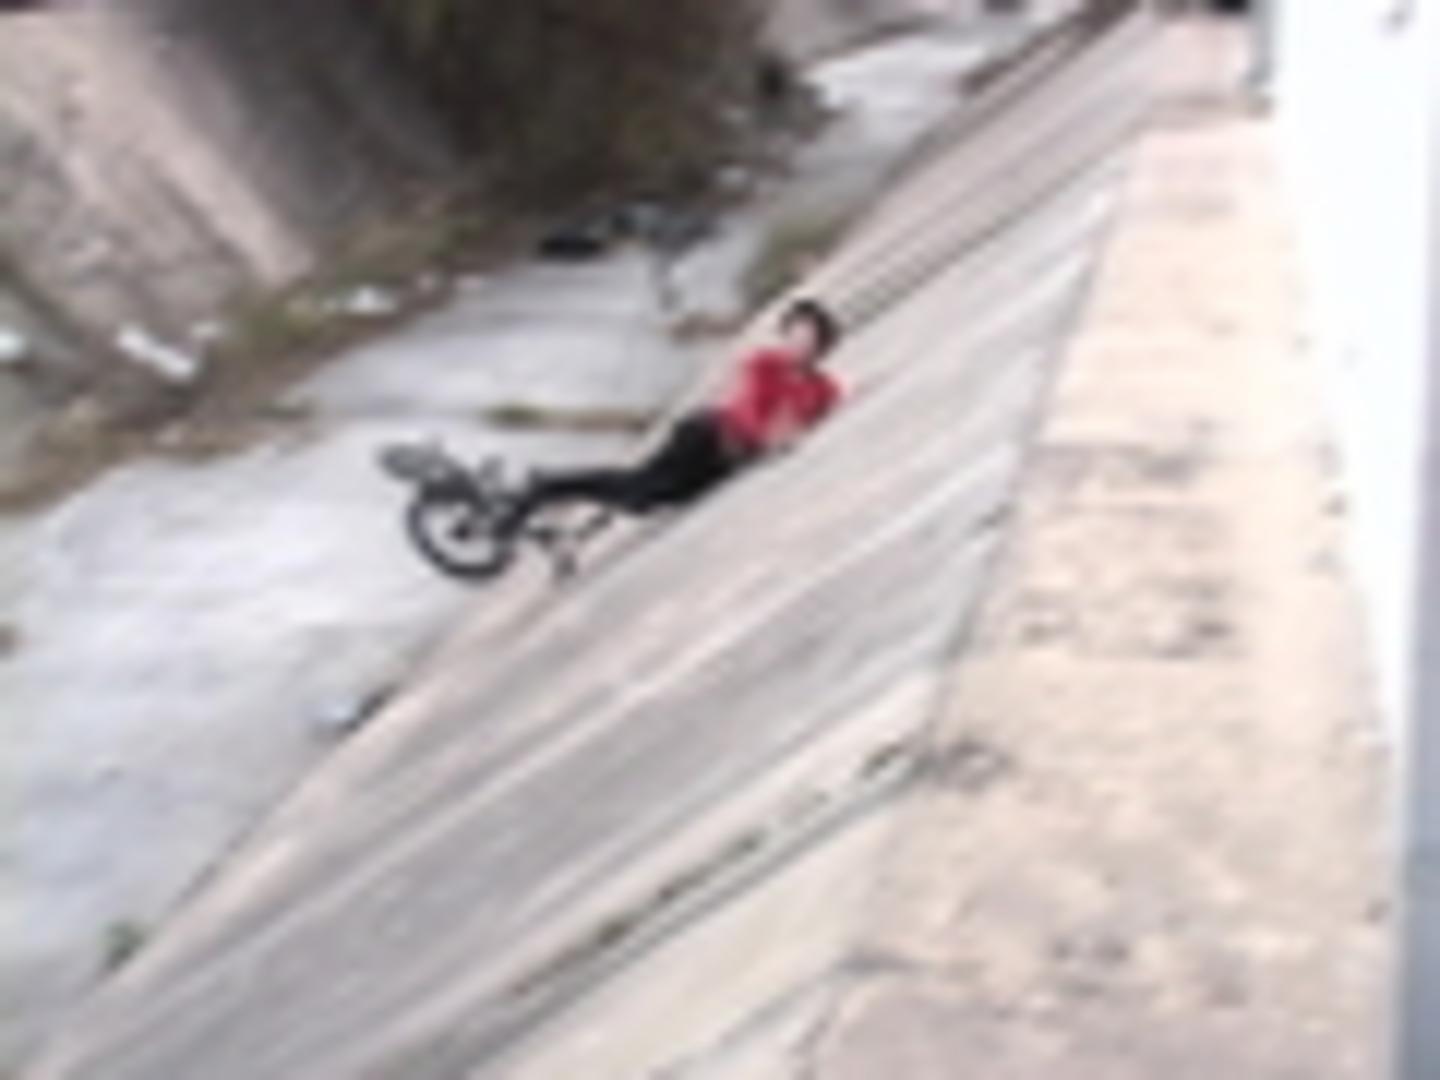 BMXer Jumps off Roof Into Drainage Ditch and Hits Wall